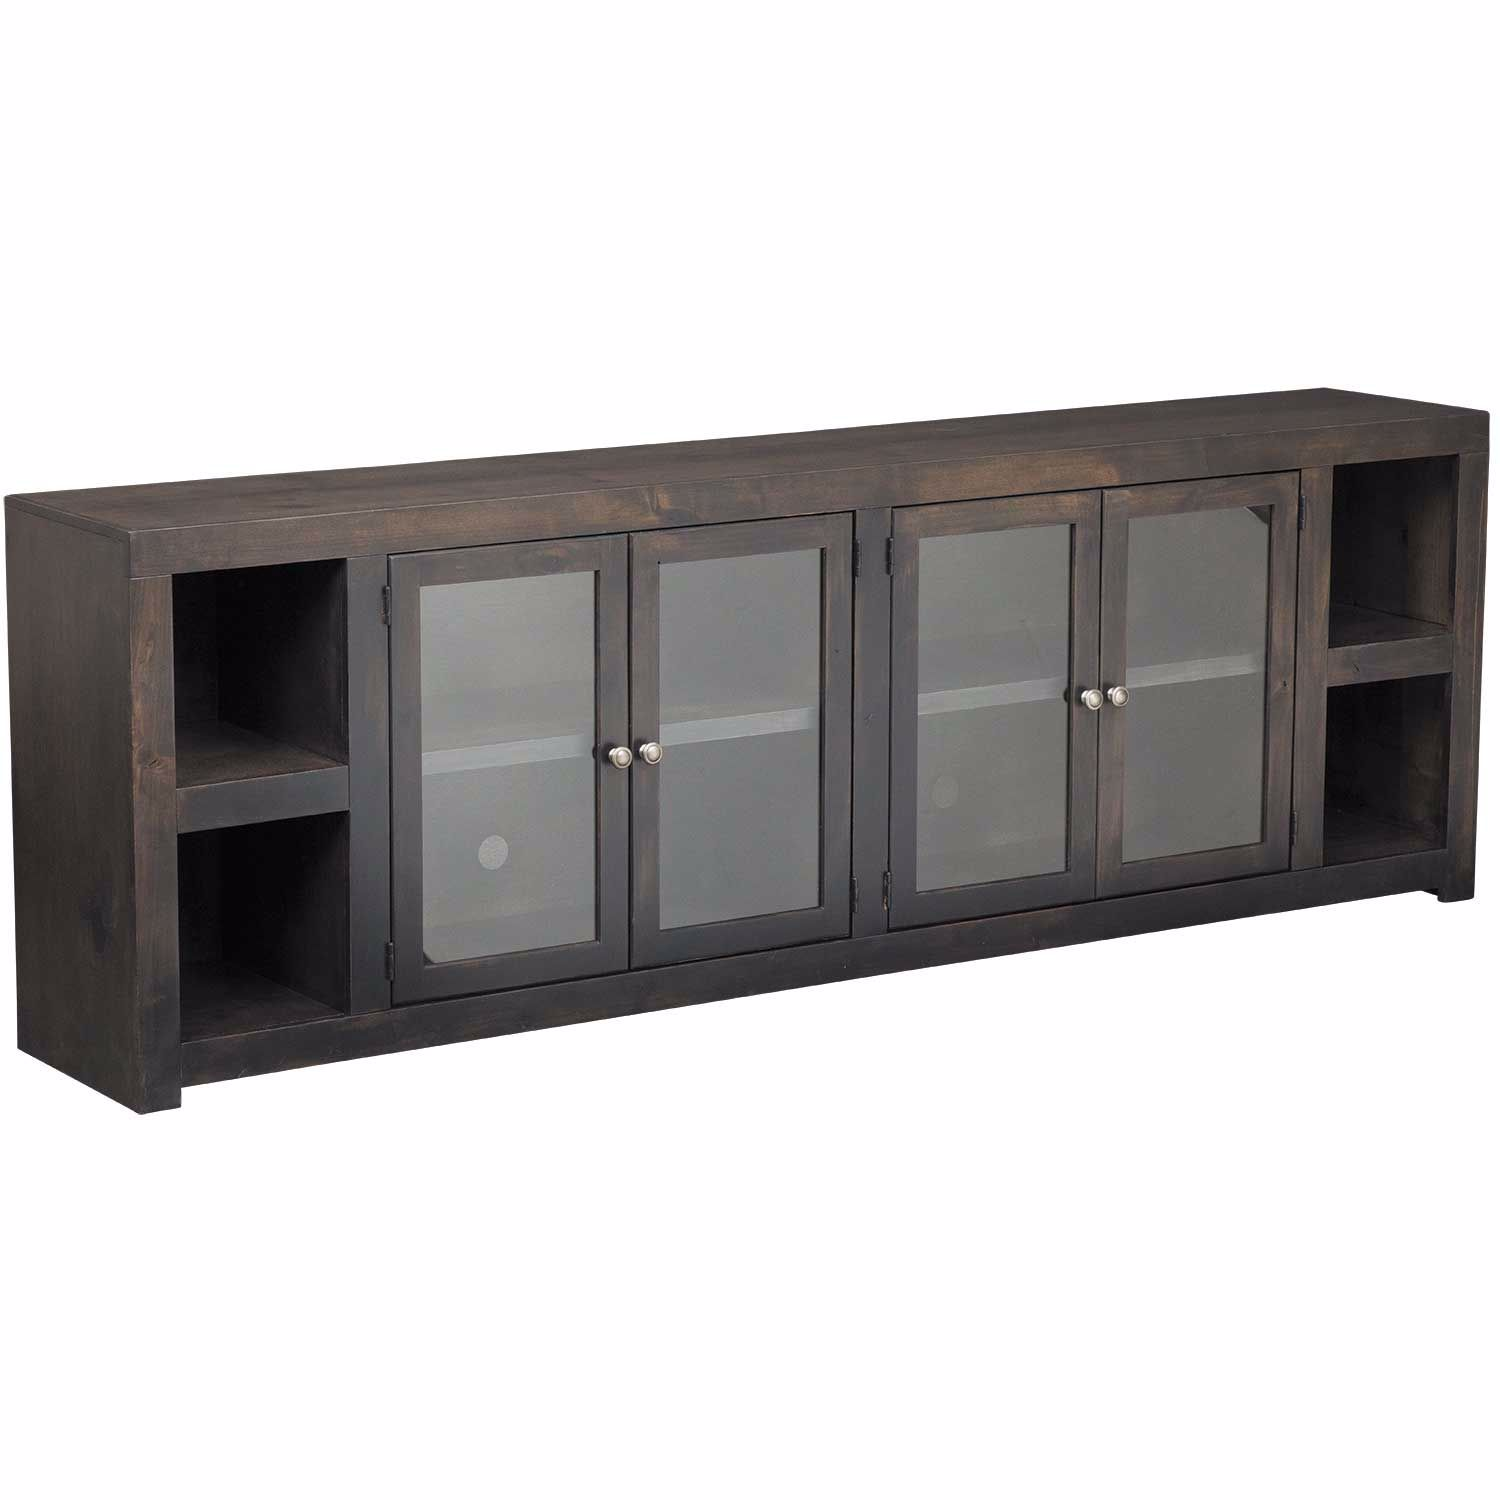 Picture of Avery Loft 97 Inch TV Console